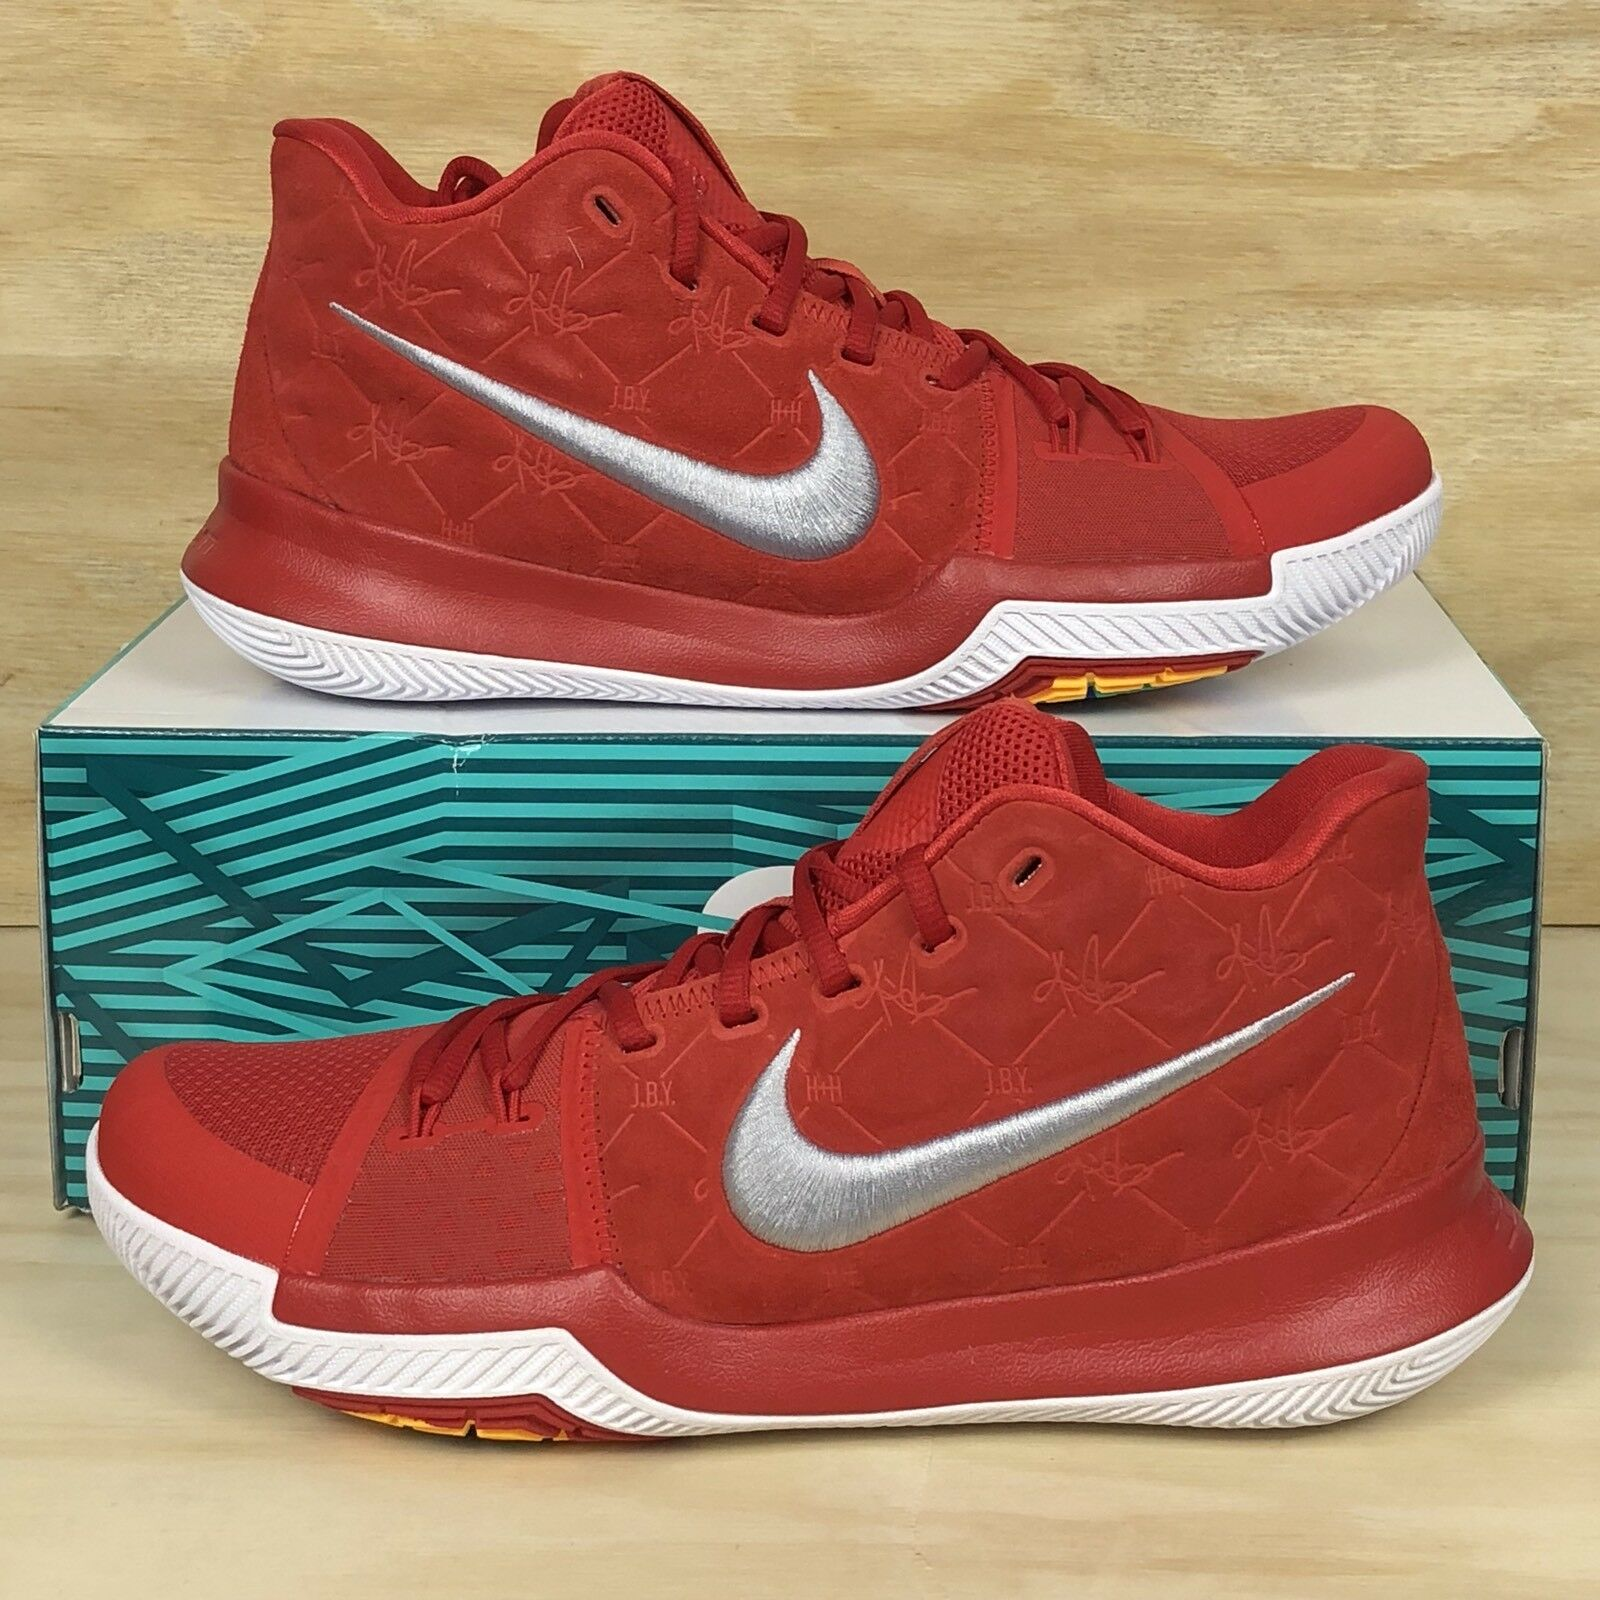 Cheap women's shoes women's shoes Nike Kyrie 3 University Red Grey White Suede Basketball Shoes Price reduction Comfortable